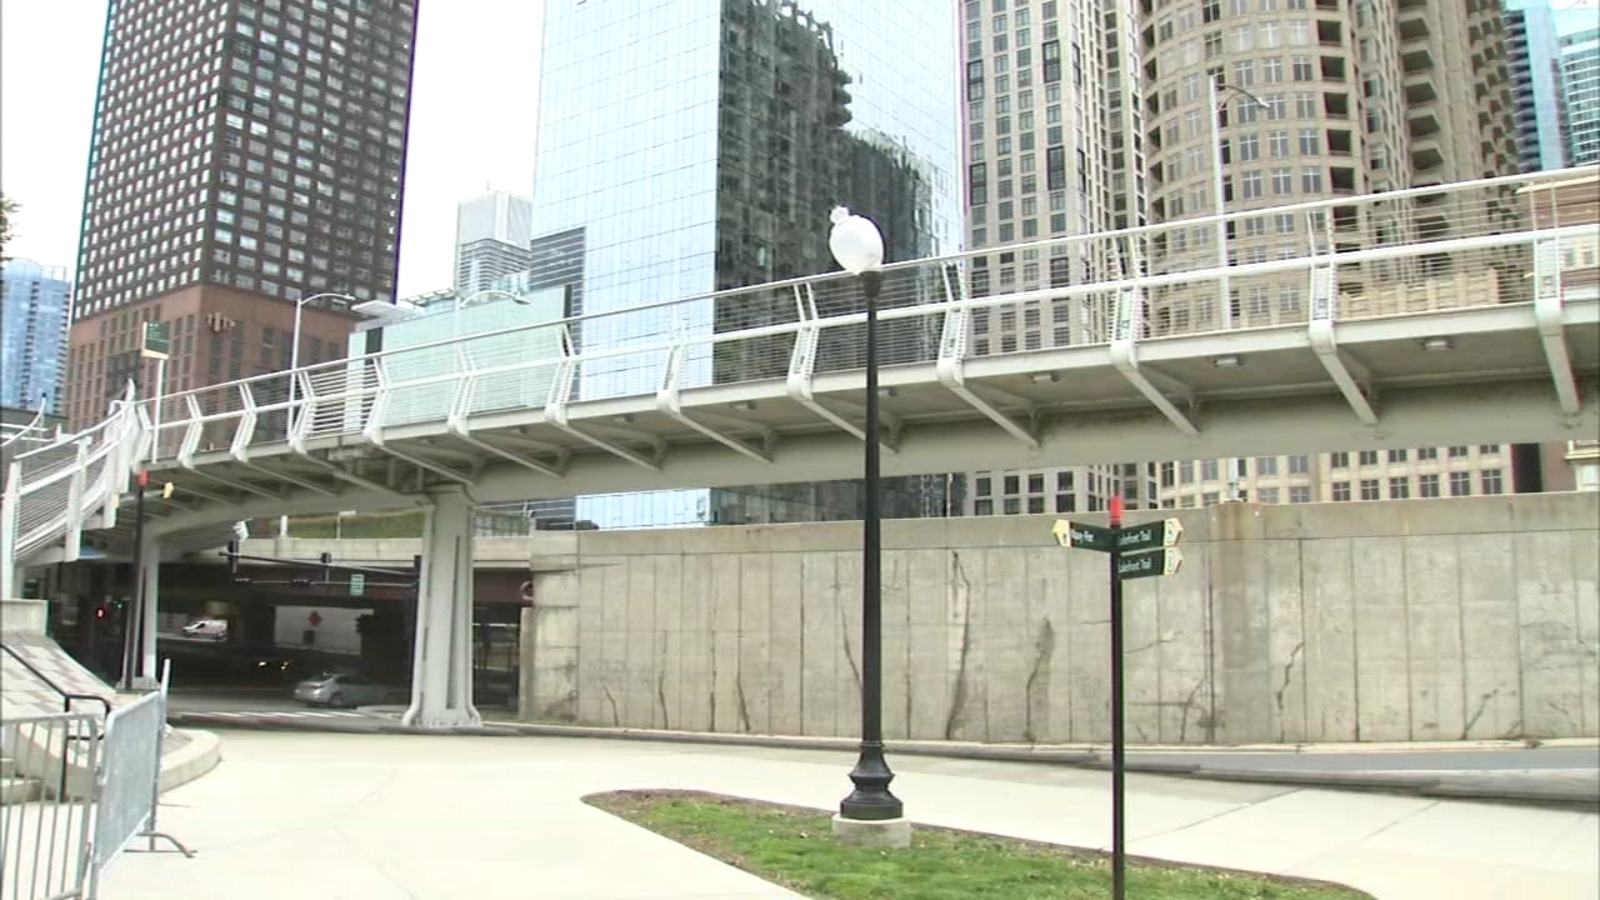 Mayor Lori Lightfoot cuts ribbon at newly completed Navy Pier Flyover Project that connects city